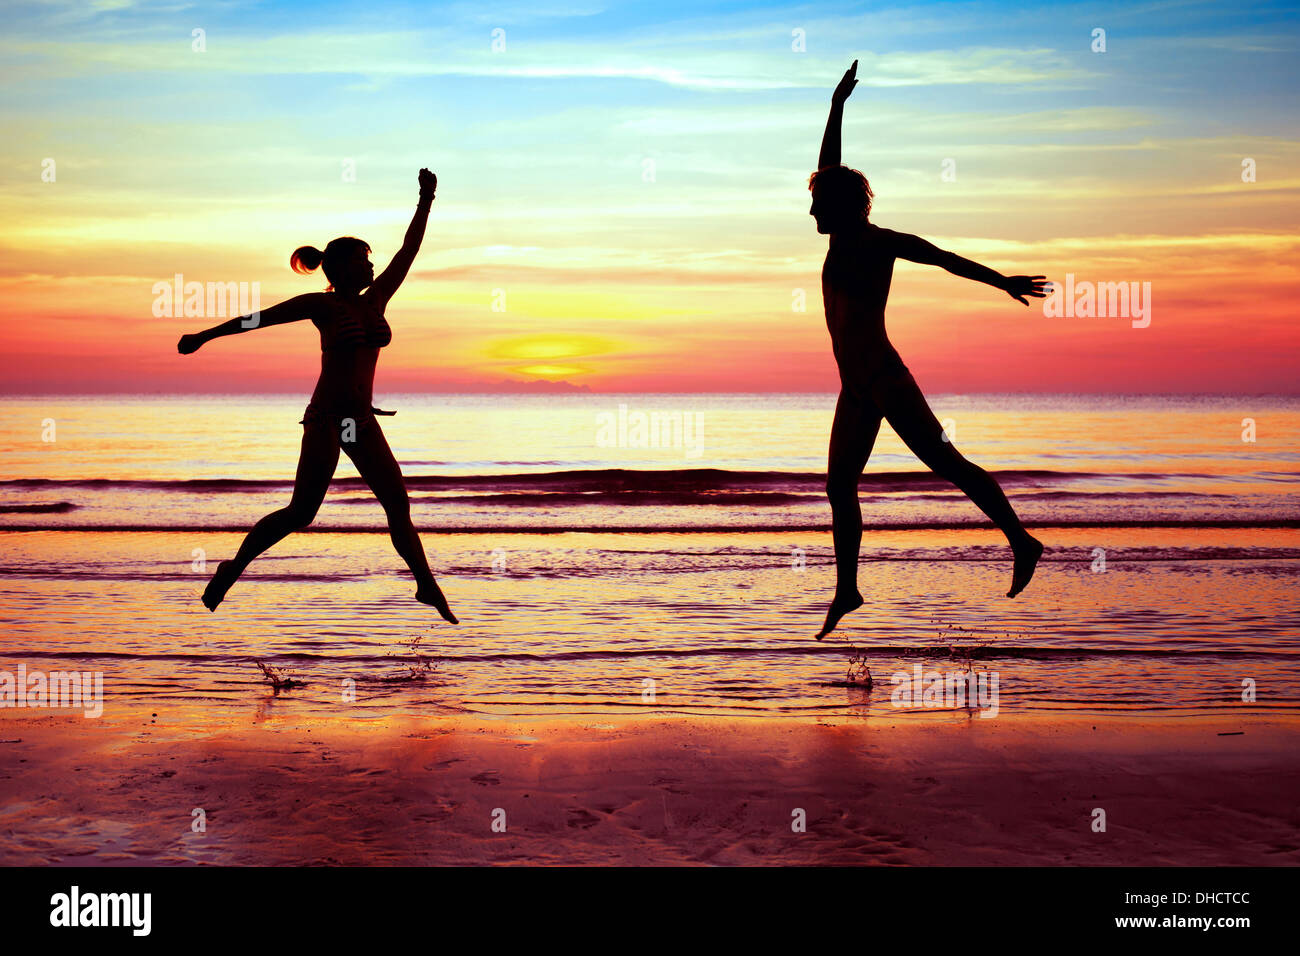 Bonheur, couple jumping on the beach Photo Stock